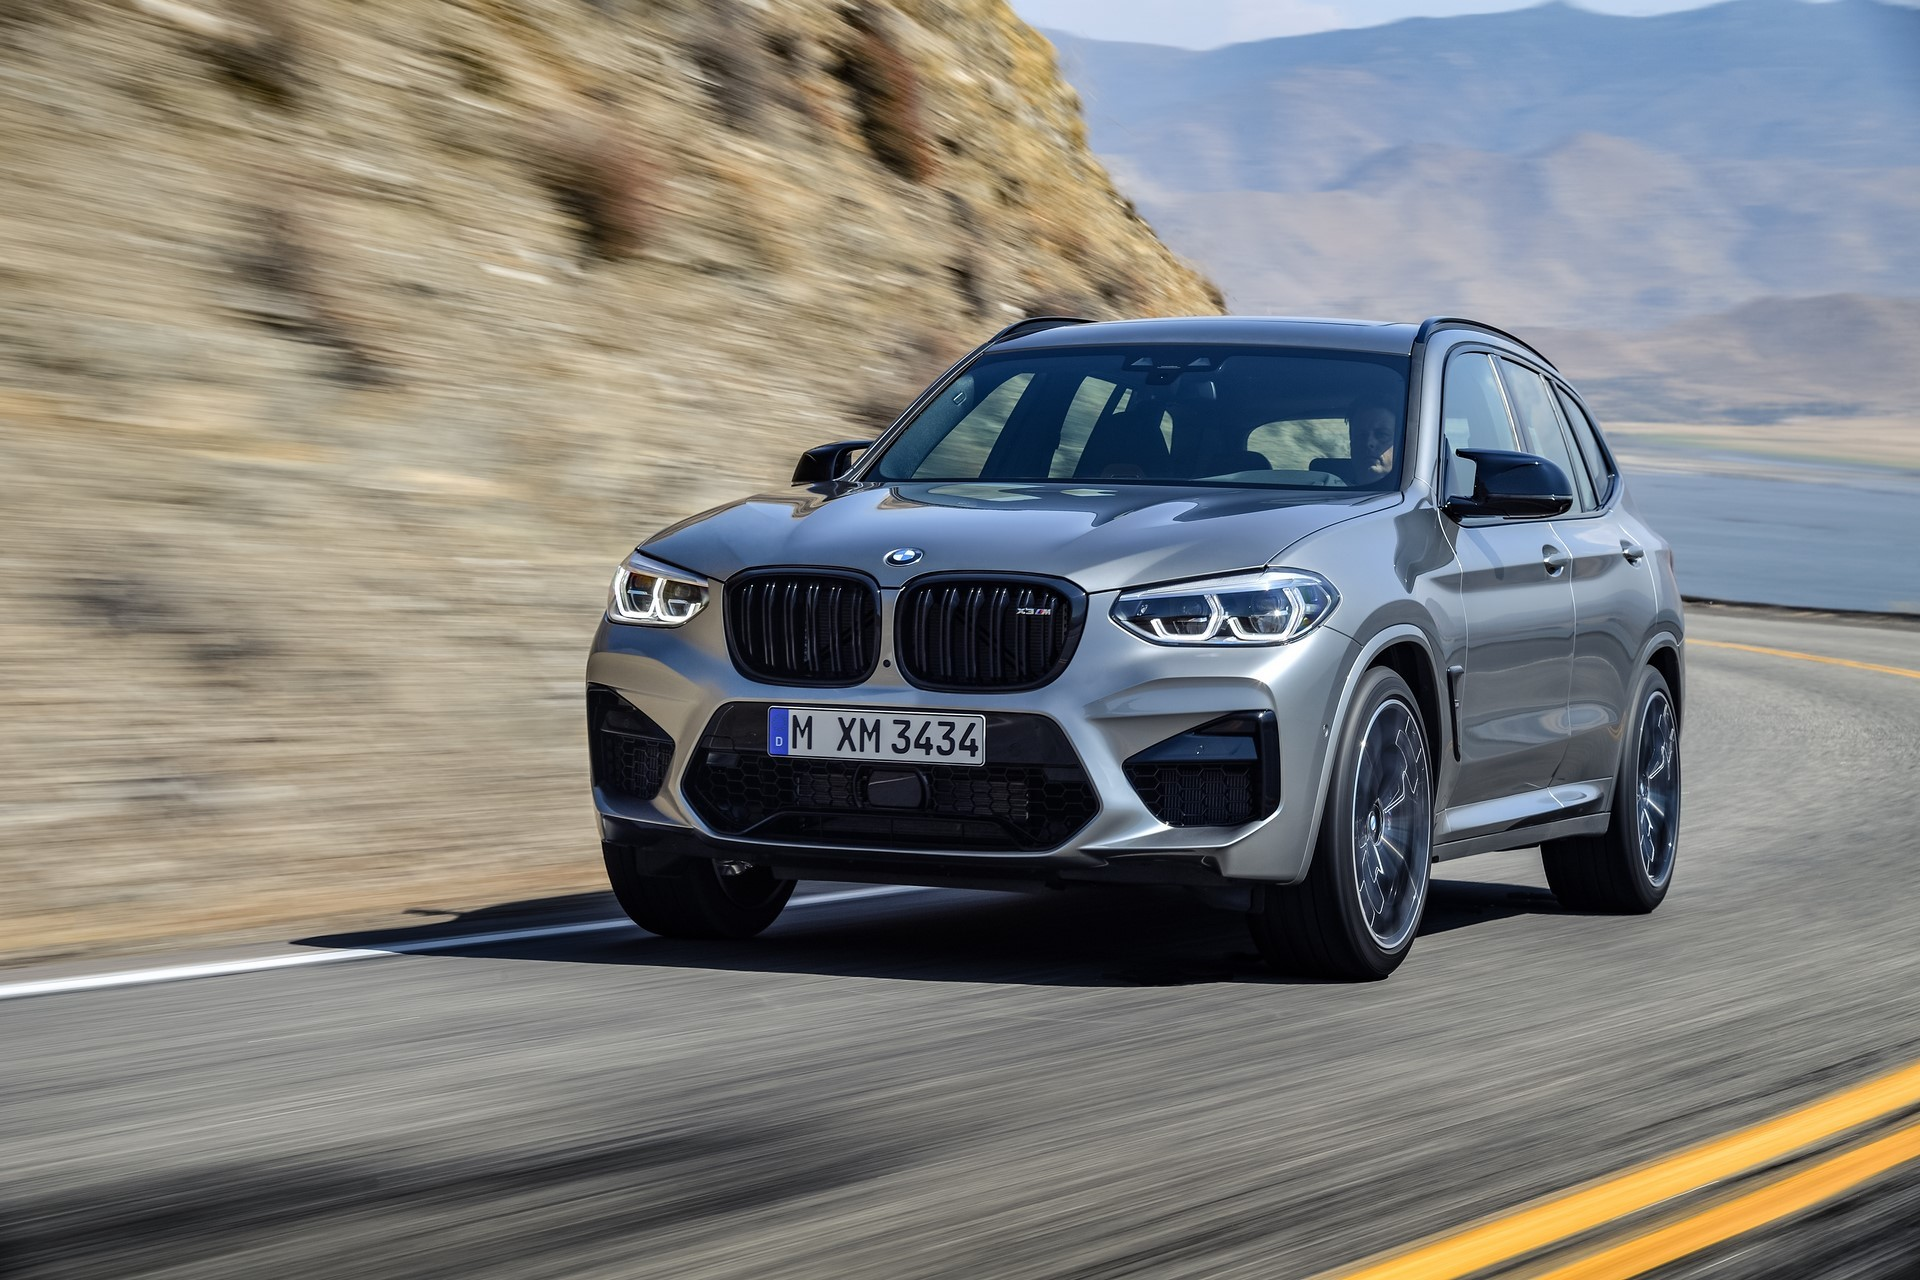 BMW X3 M and X4 M 2019 (26)